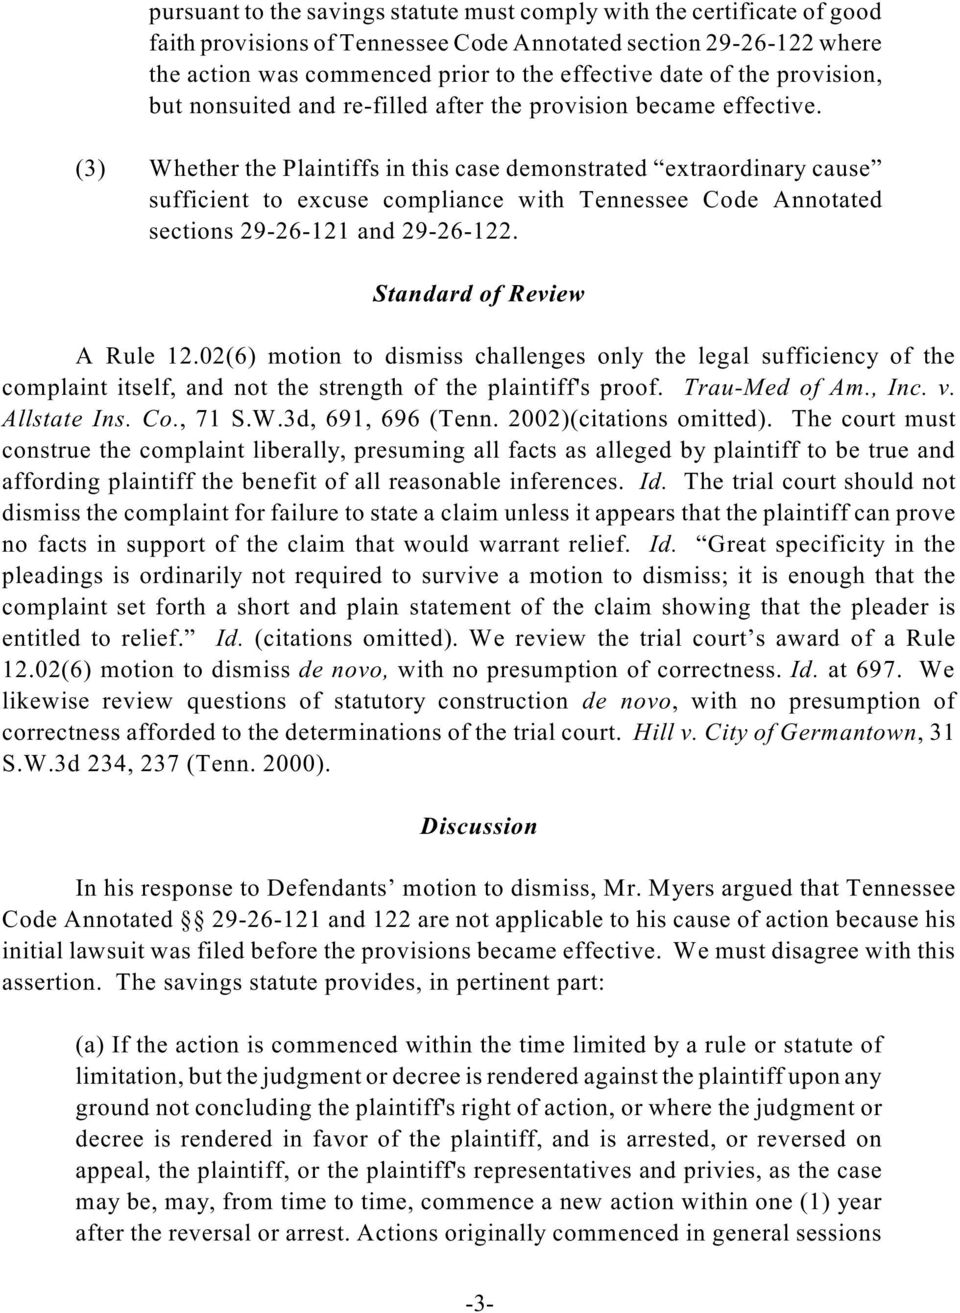 (3) Whether the Plaintiffs in this case demonstrated extraordinary cause sufficient to excuse compliance with Tennessee Code Annotated sections 29-26-121 and 29-26-122. Standard of Review A Rule 12.